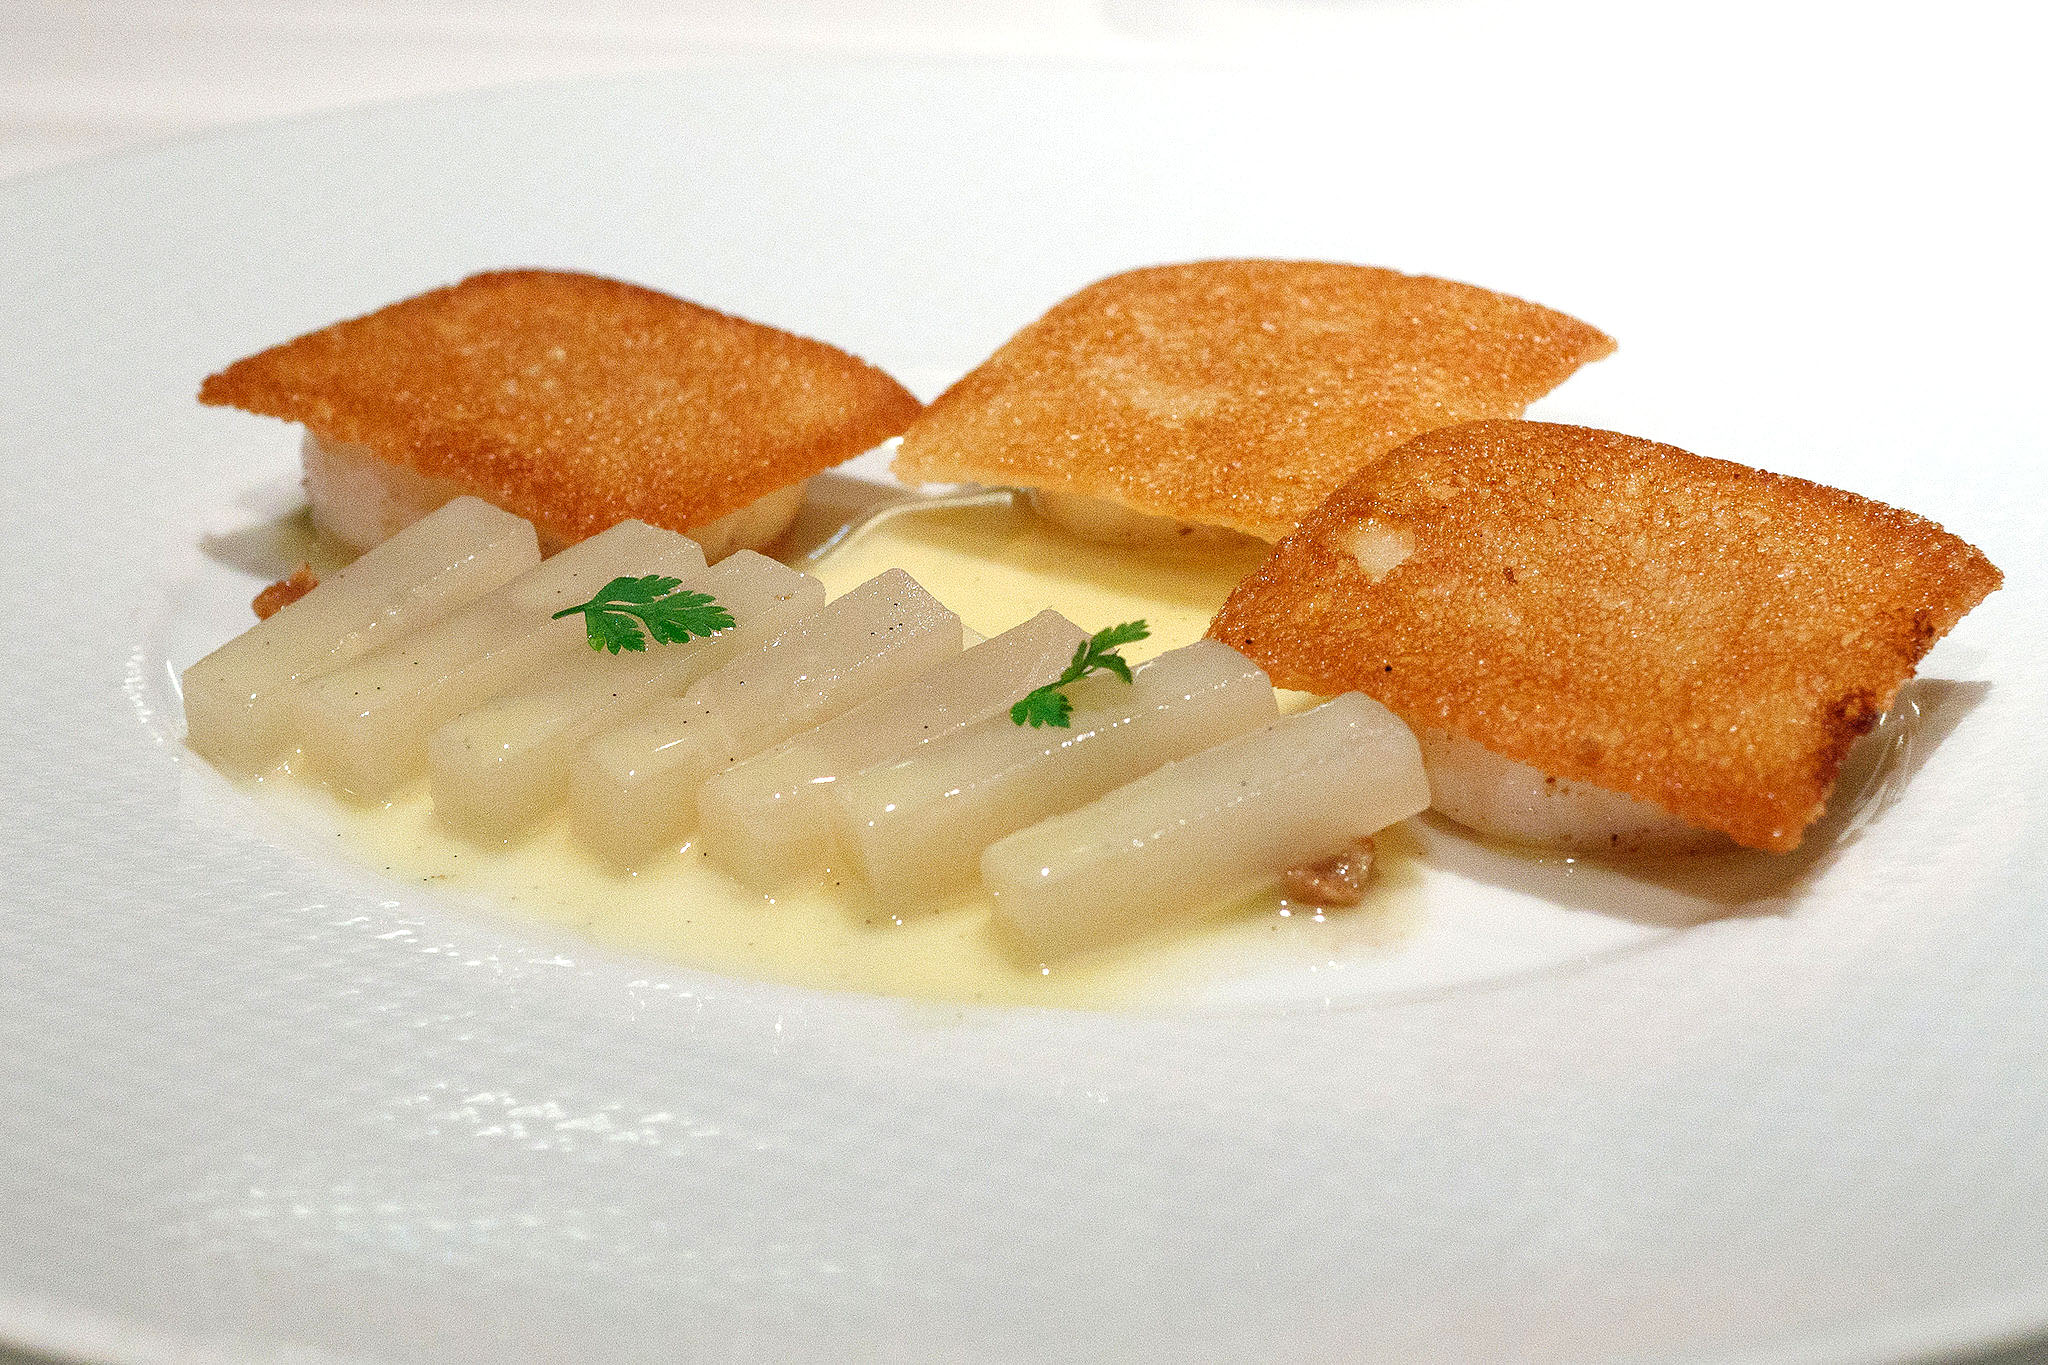 Signature, Tokyo - Toasted scallops and stewed vanilla turnips with candied lemon and walnut condiment